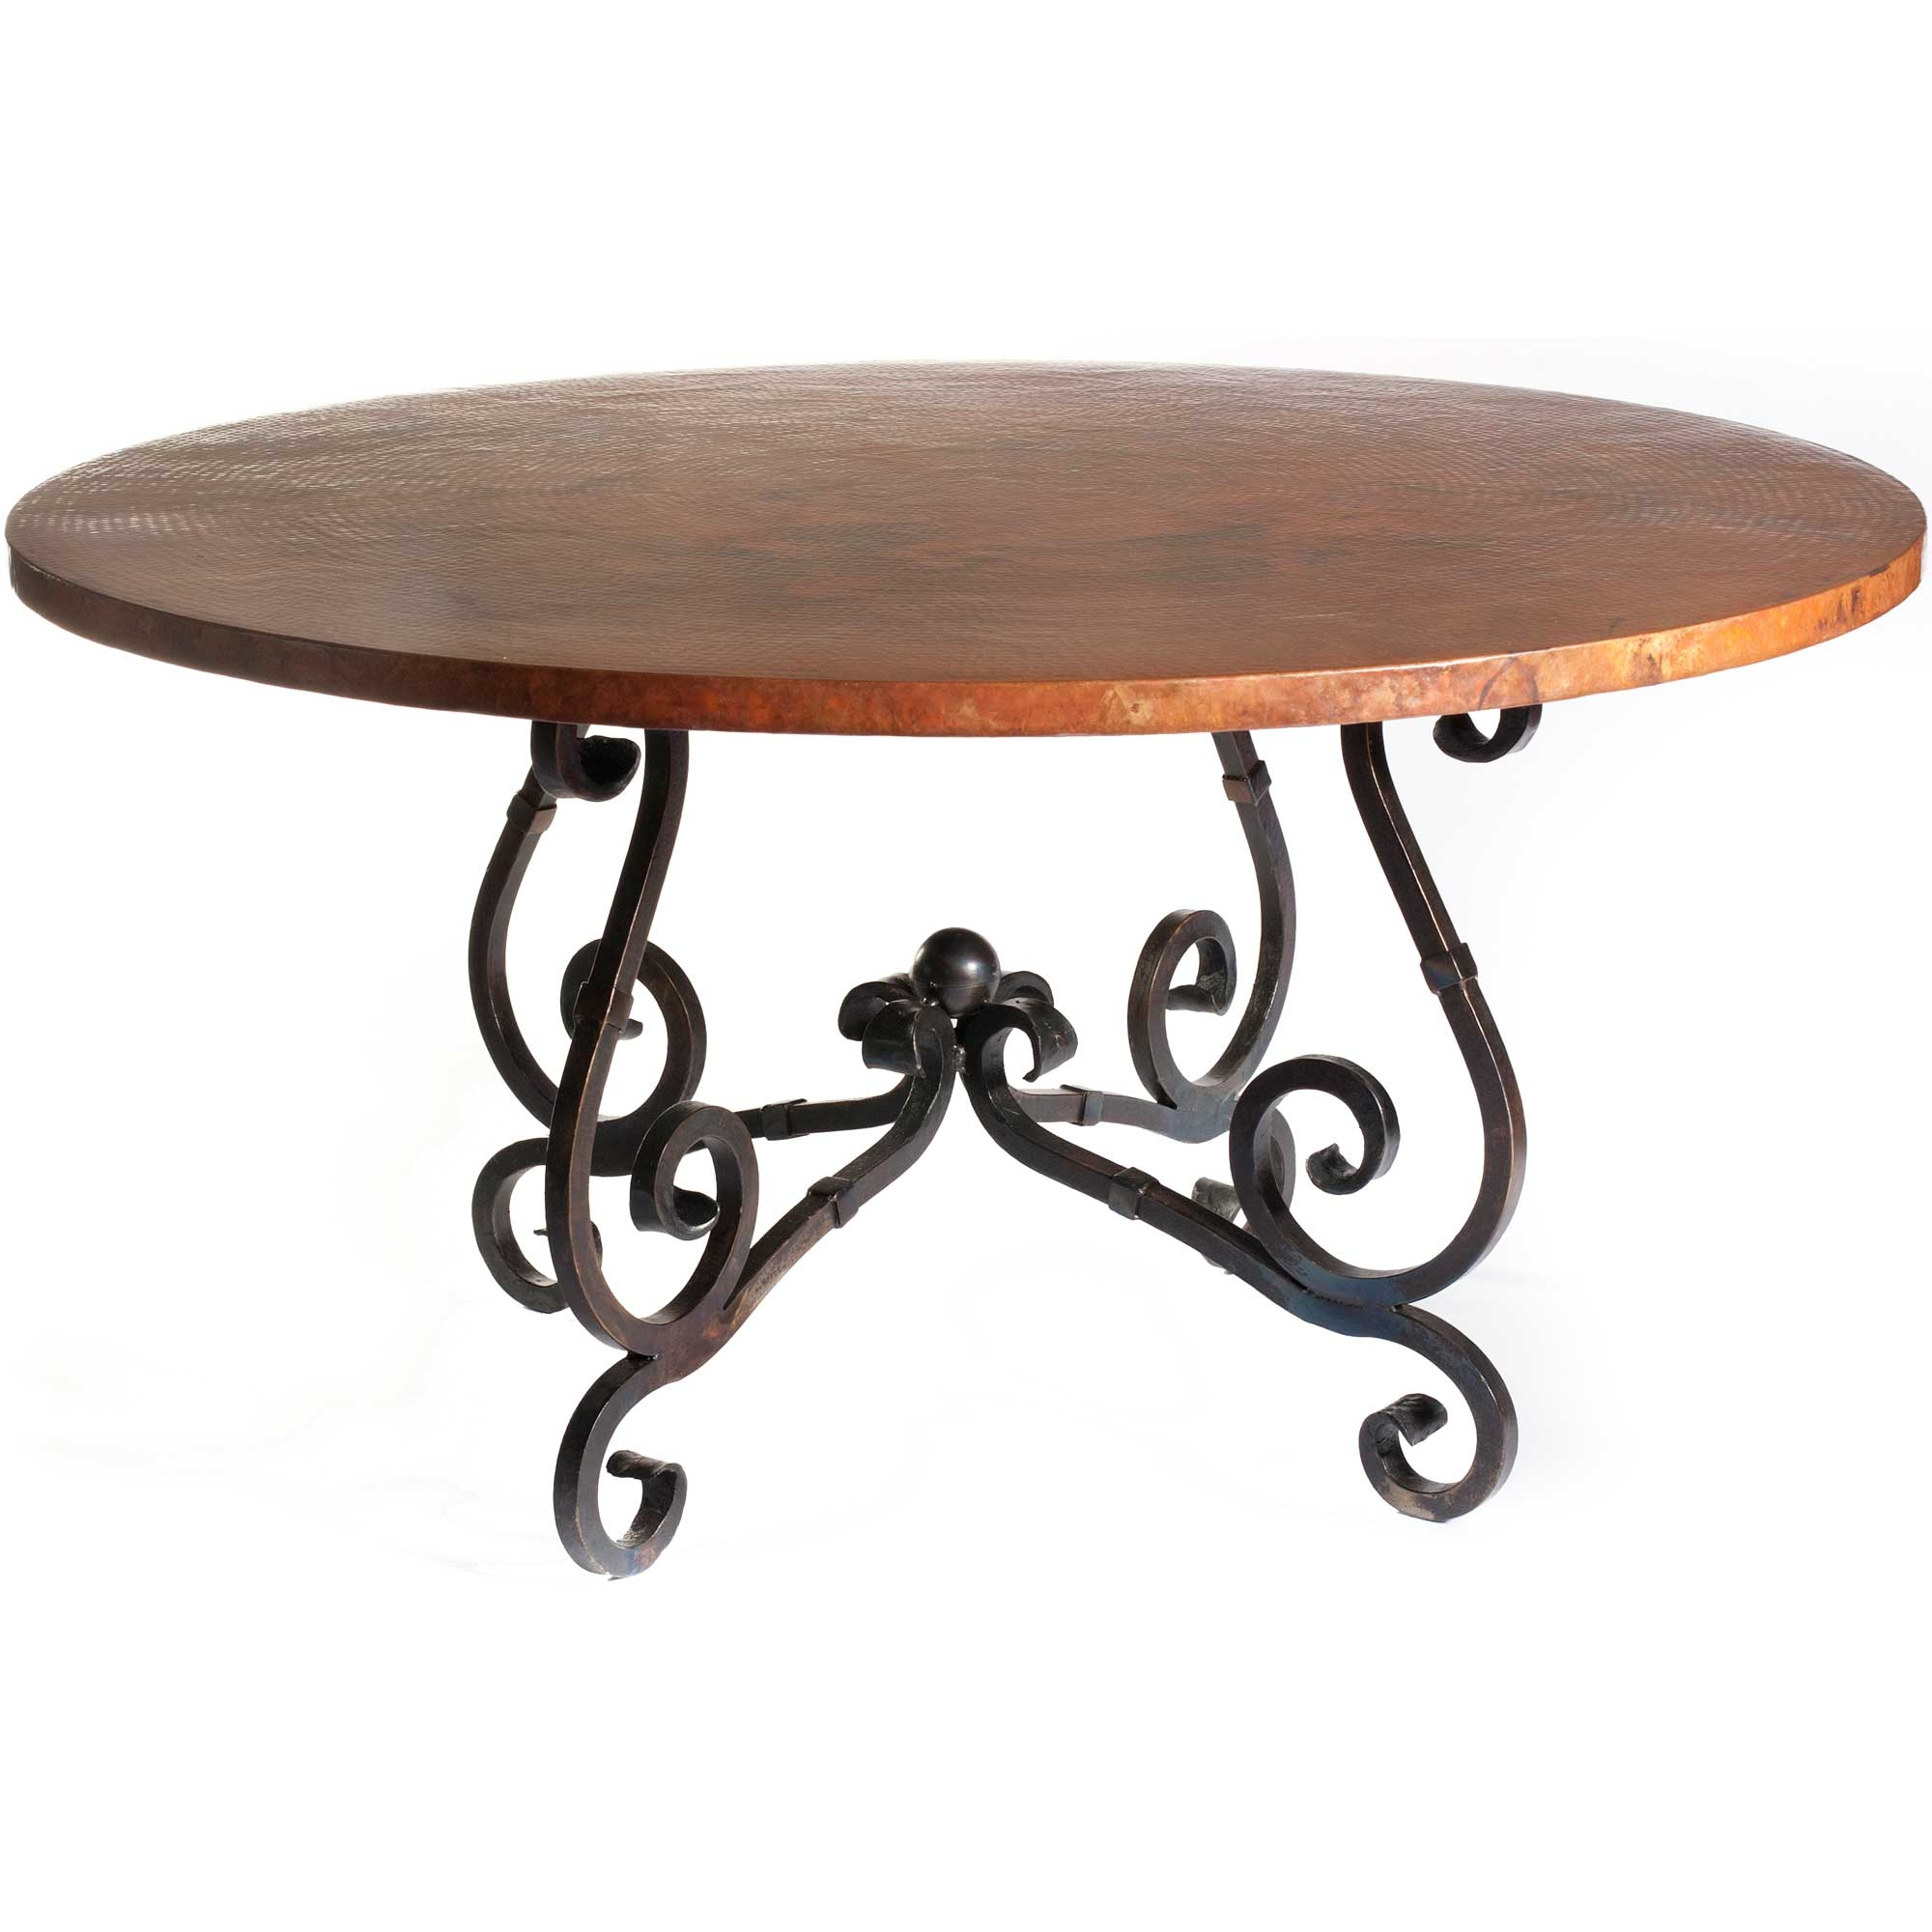 French Iron Dining Table With 54 In Round Hammered Copper Top